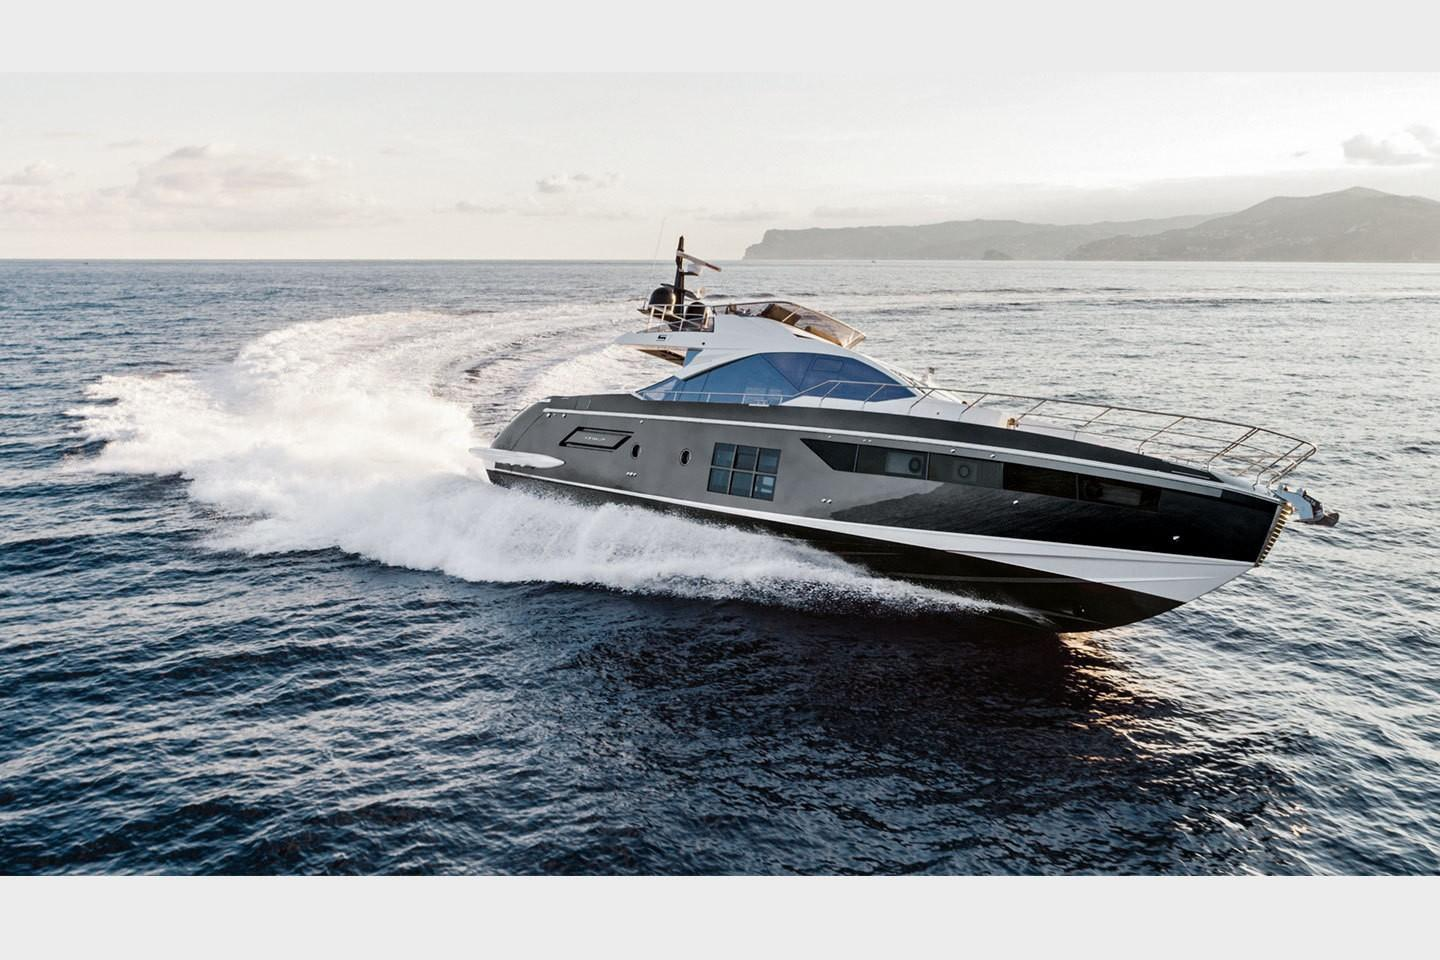 Thumbnail 3 for 2019 Azimut S7